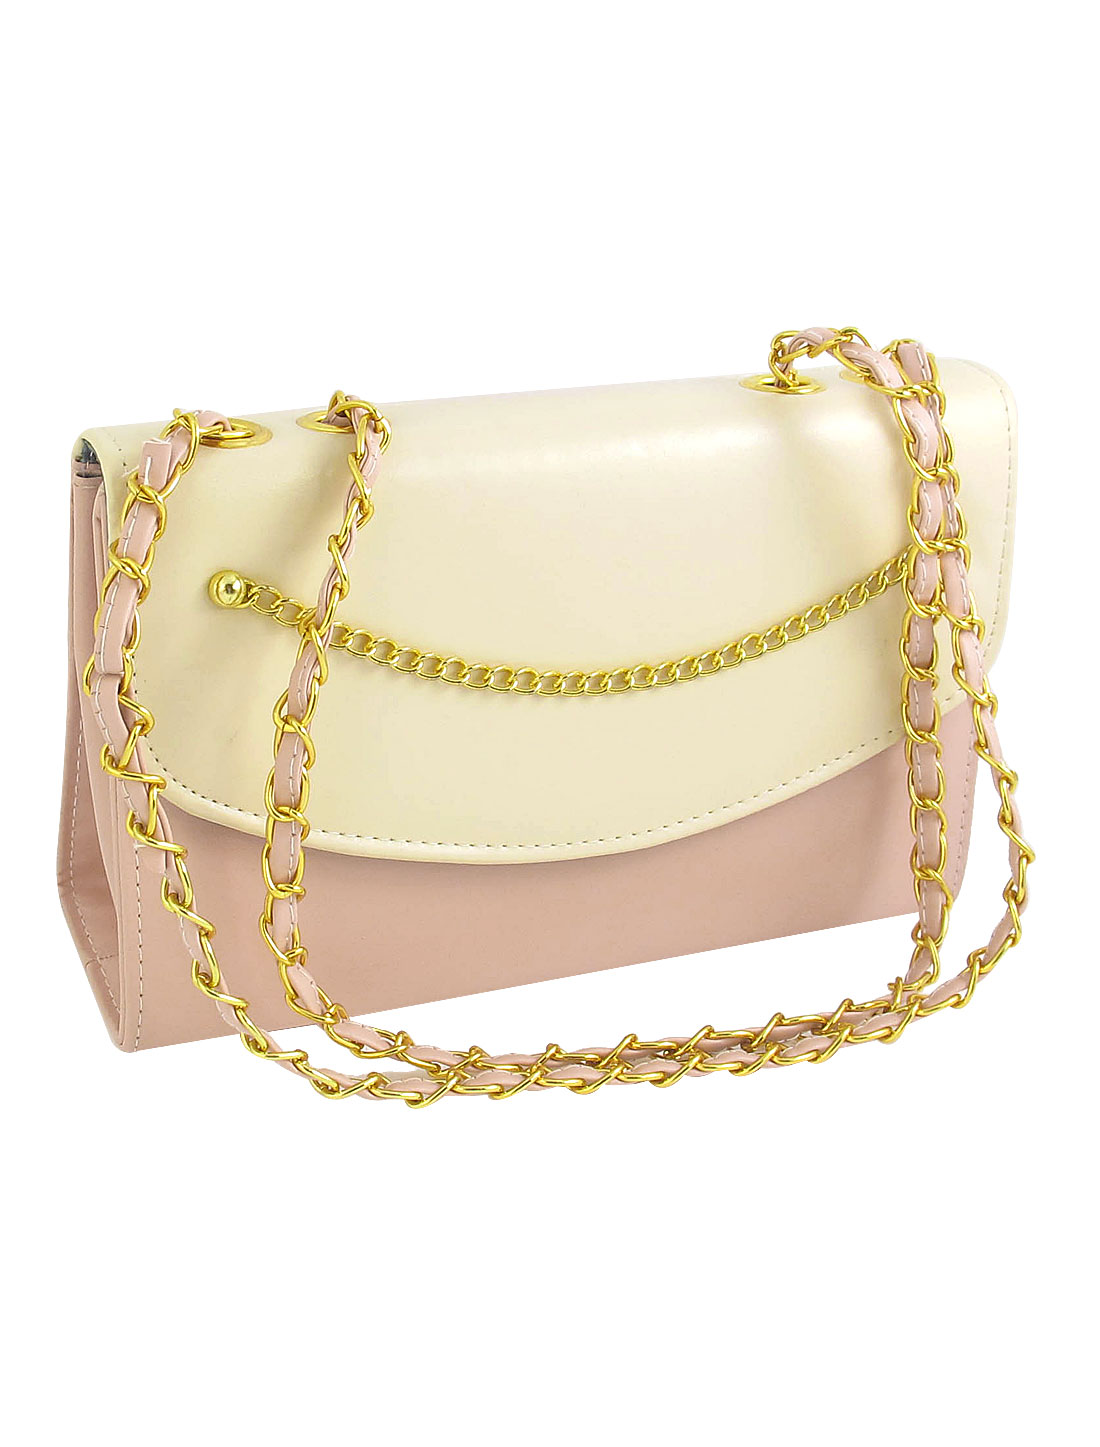 Women Magnet Button Zipper Closure Gold Tone Chain Decor 3 Compartment Pink Faux Leather Handbag Shoulder bag